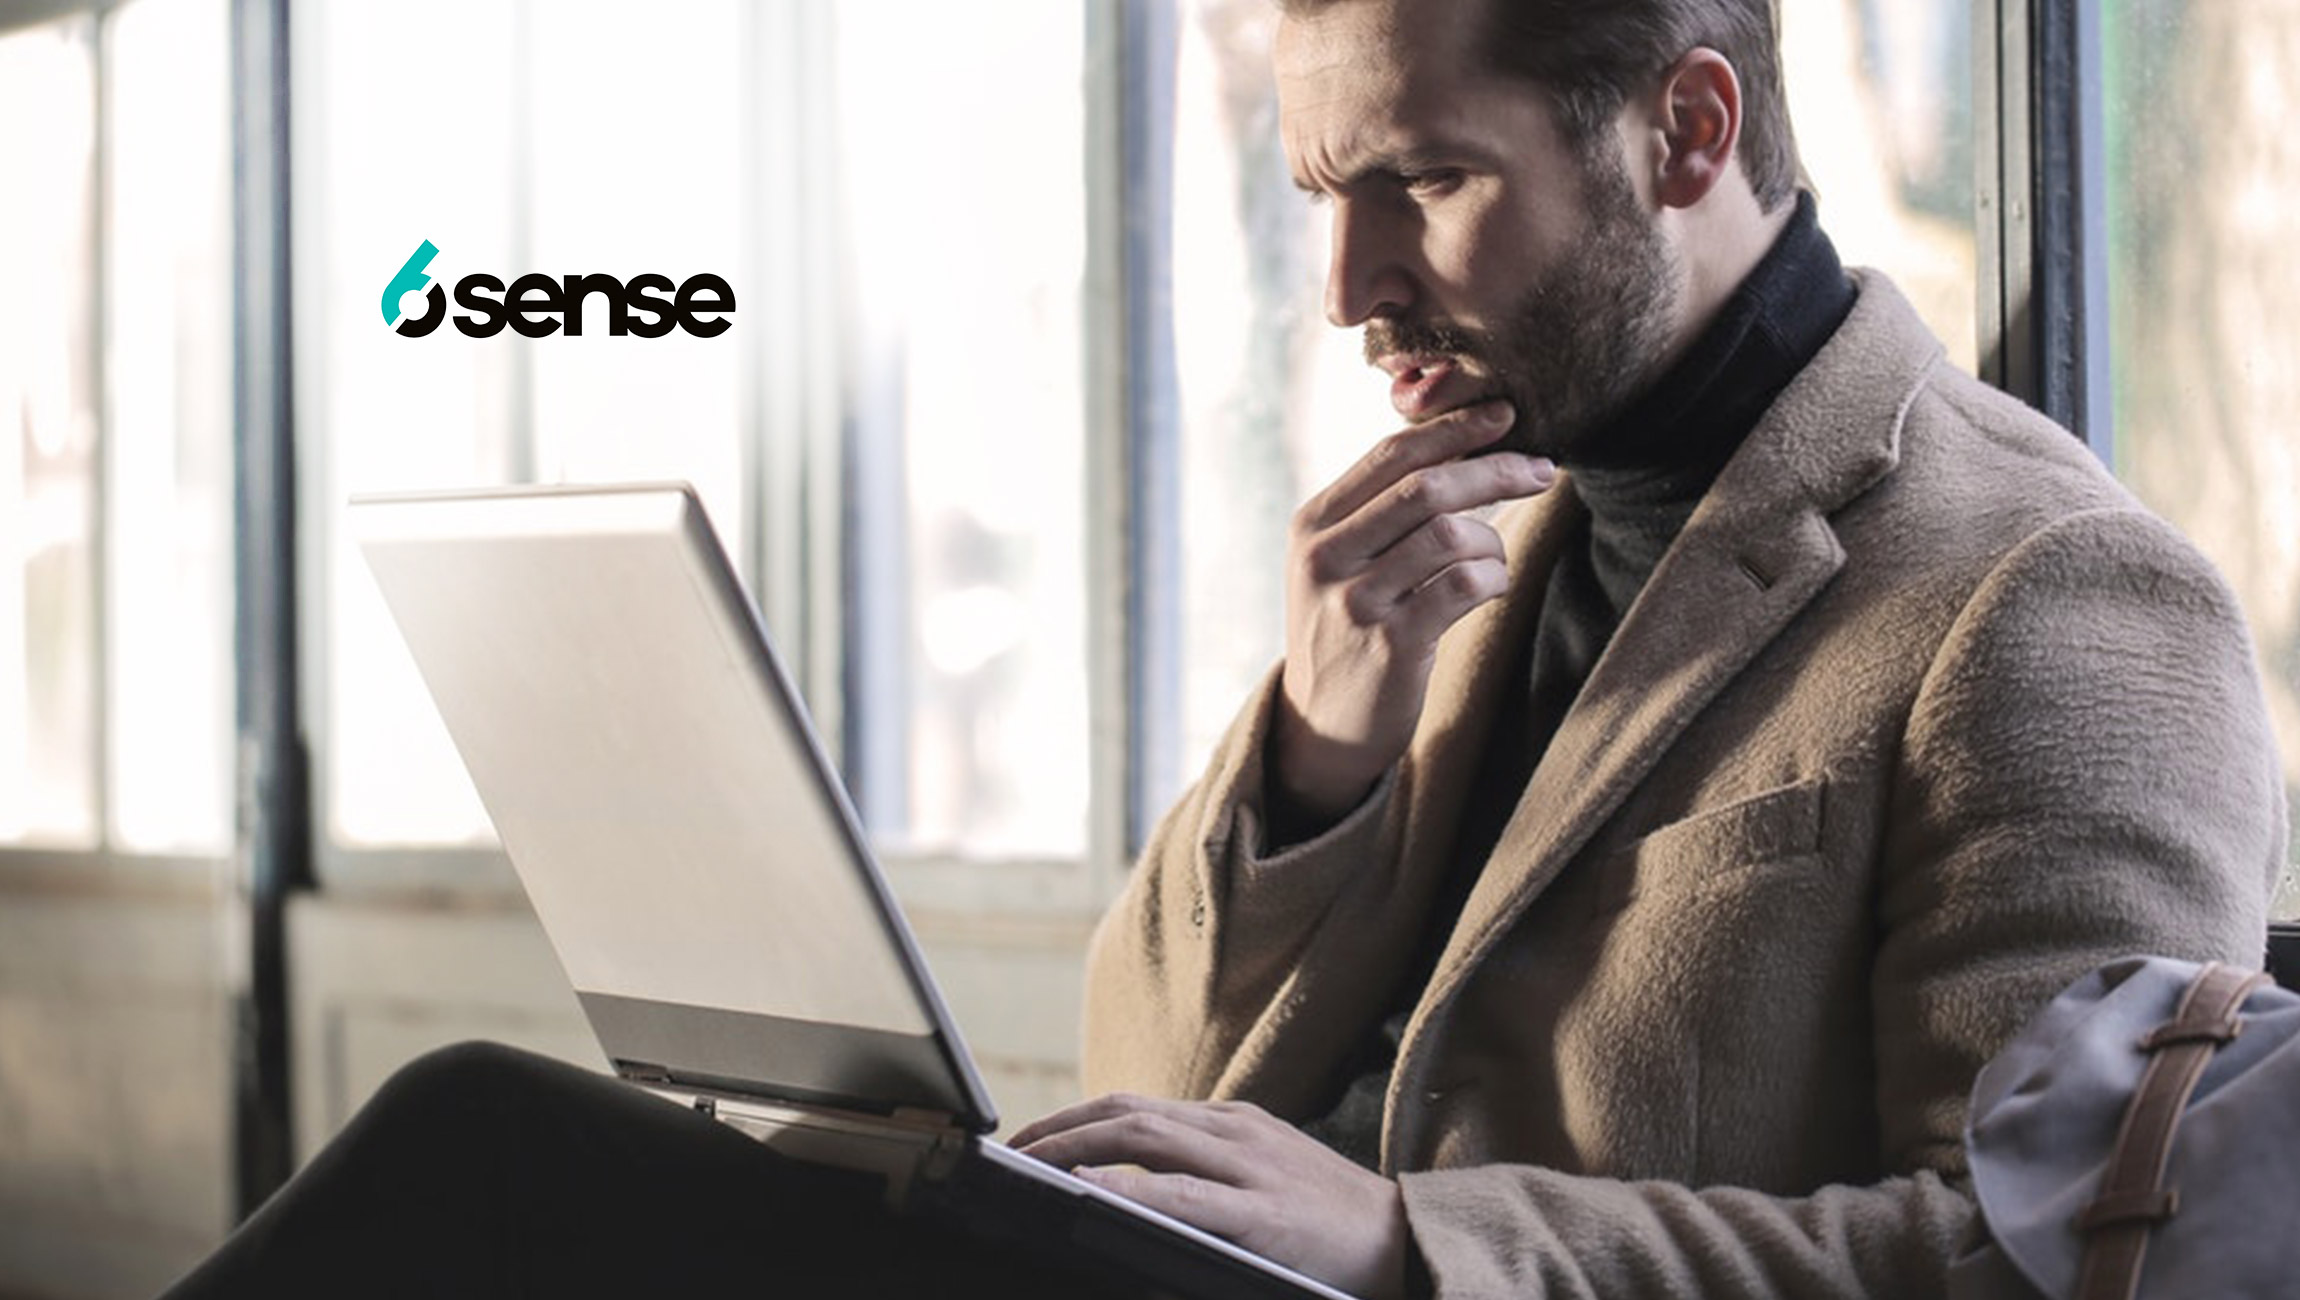 6sense Launches New Sales Intelligence Experience for Latest CRM Systems